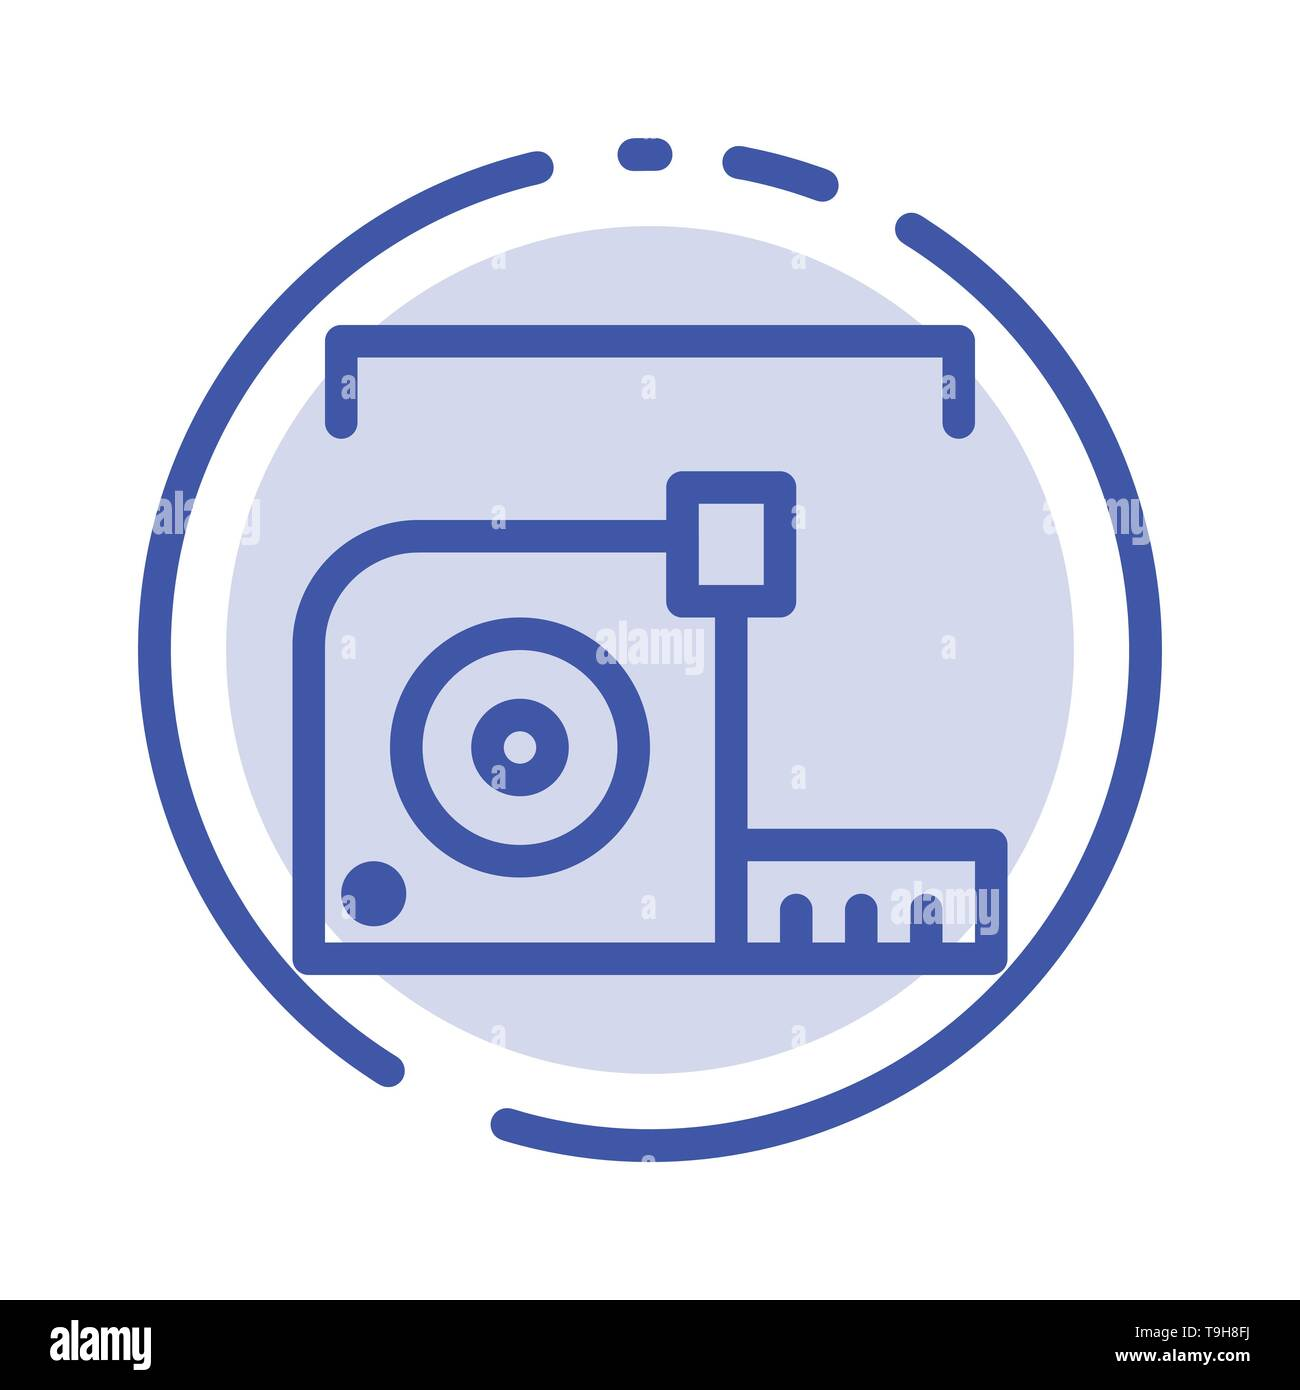 Measure, Measurement, Meter, Roulette, Ruler Blue Dotted Line Line Icon - Stock Image